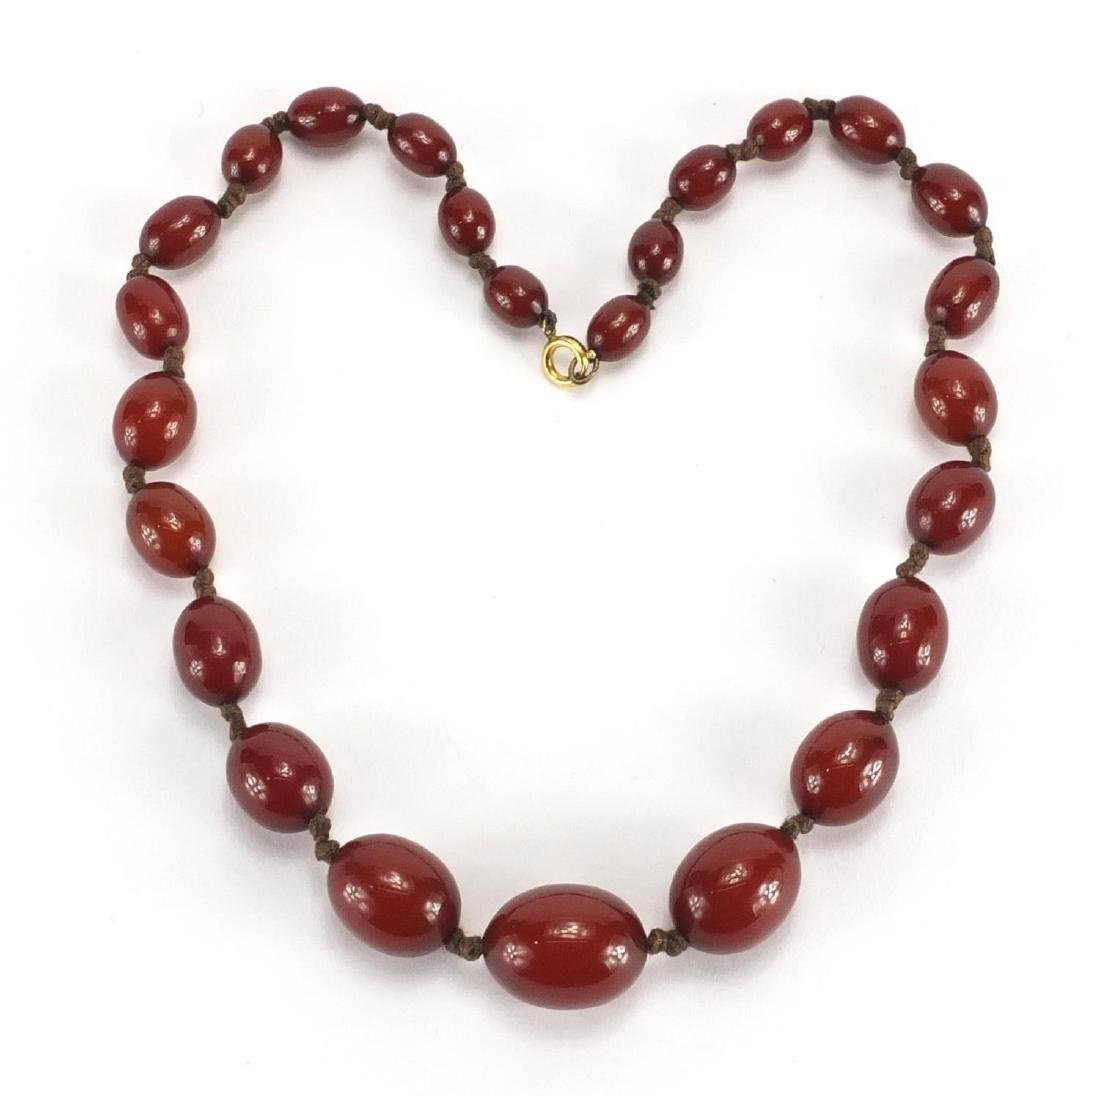 Cherry amber coloured bead necklace, 44cm in length, approximate weight 37.2g Further condition